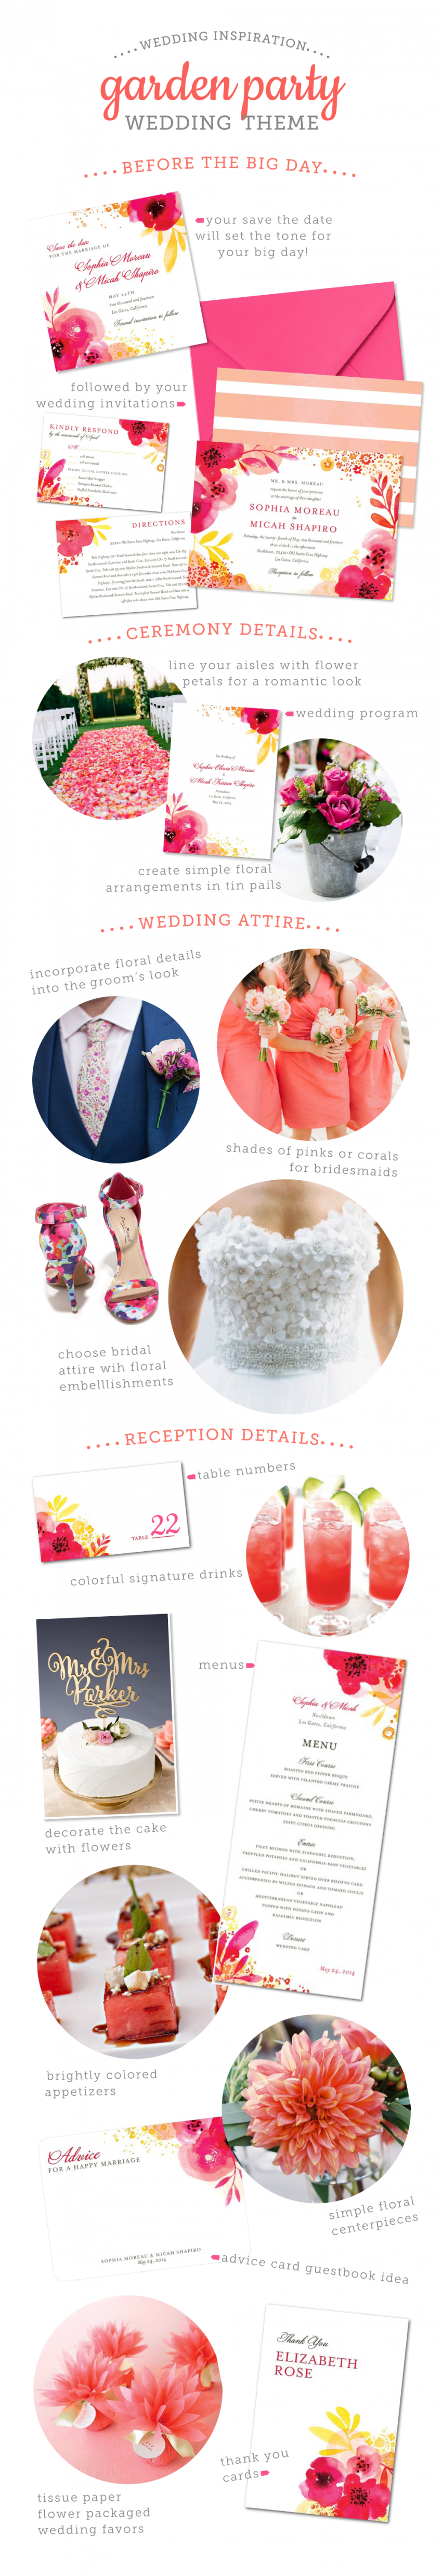 Creating a cohesive theme through your wedding stationery